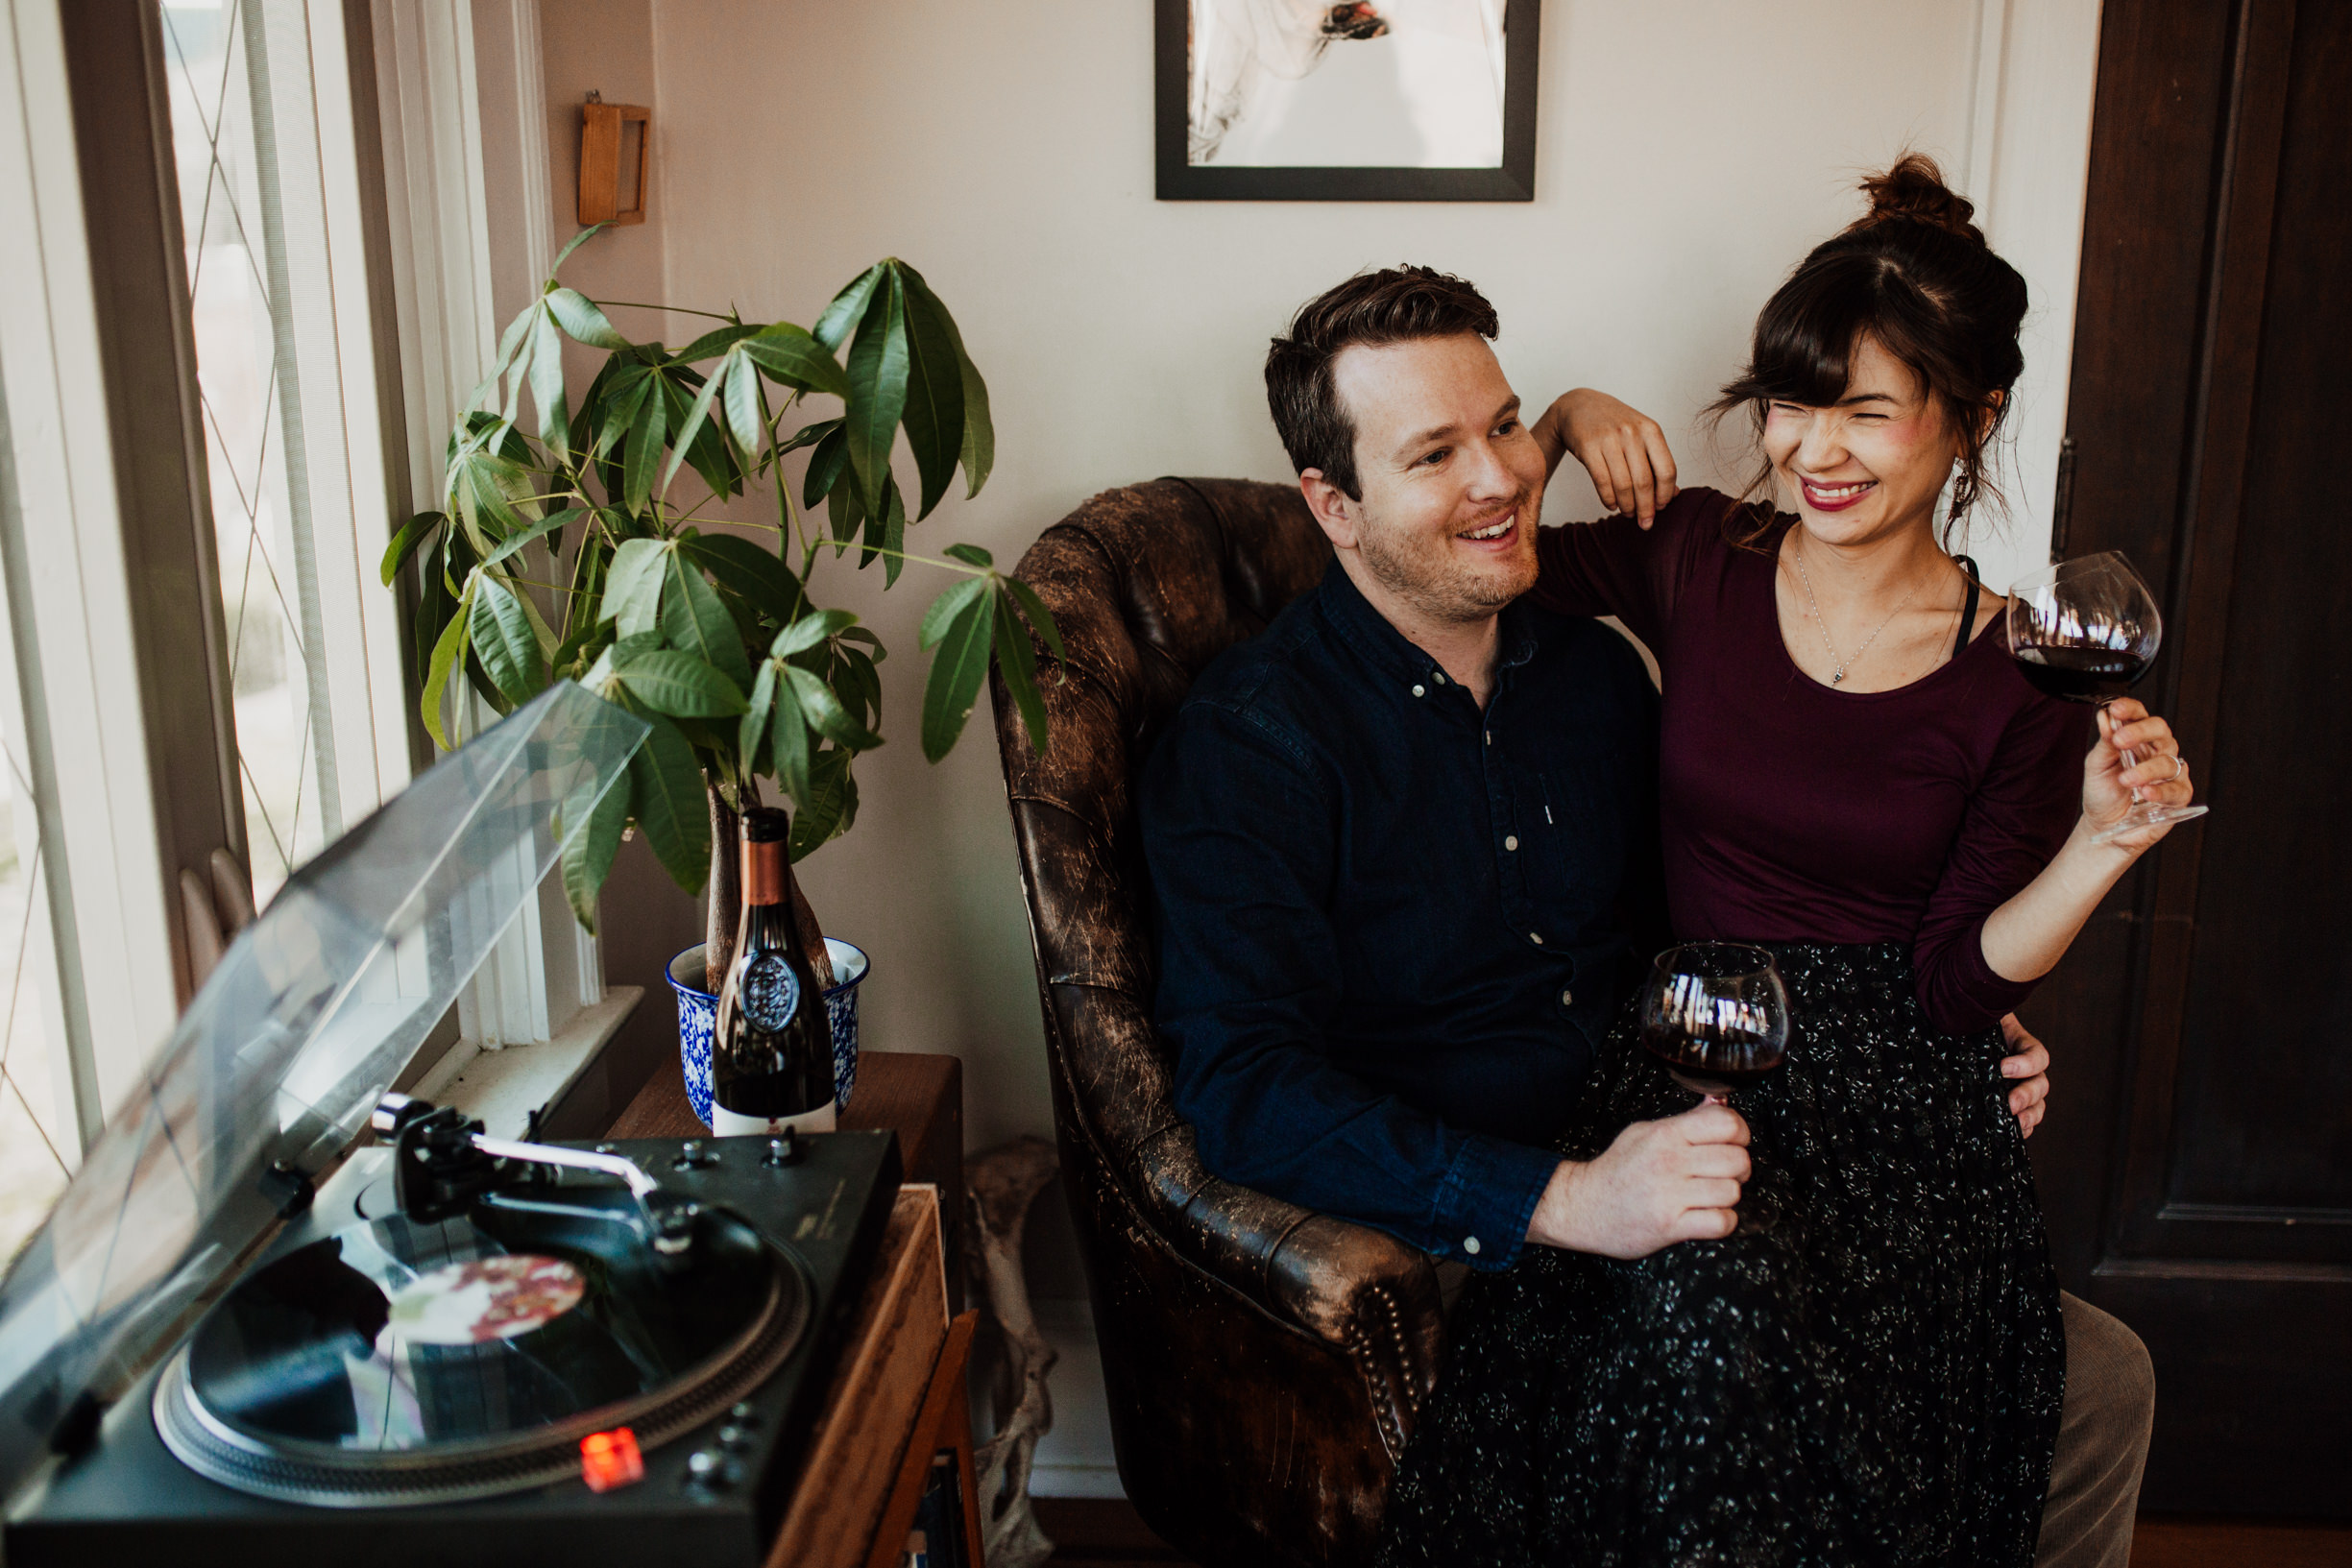 louisville-engagement-photographer-record-store-in-home-session-crystal-ludwick-photo (7 of 53).jpg